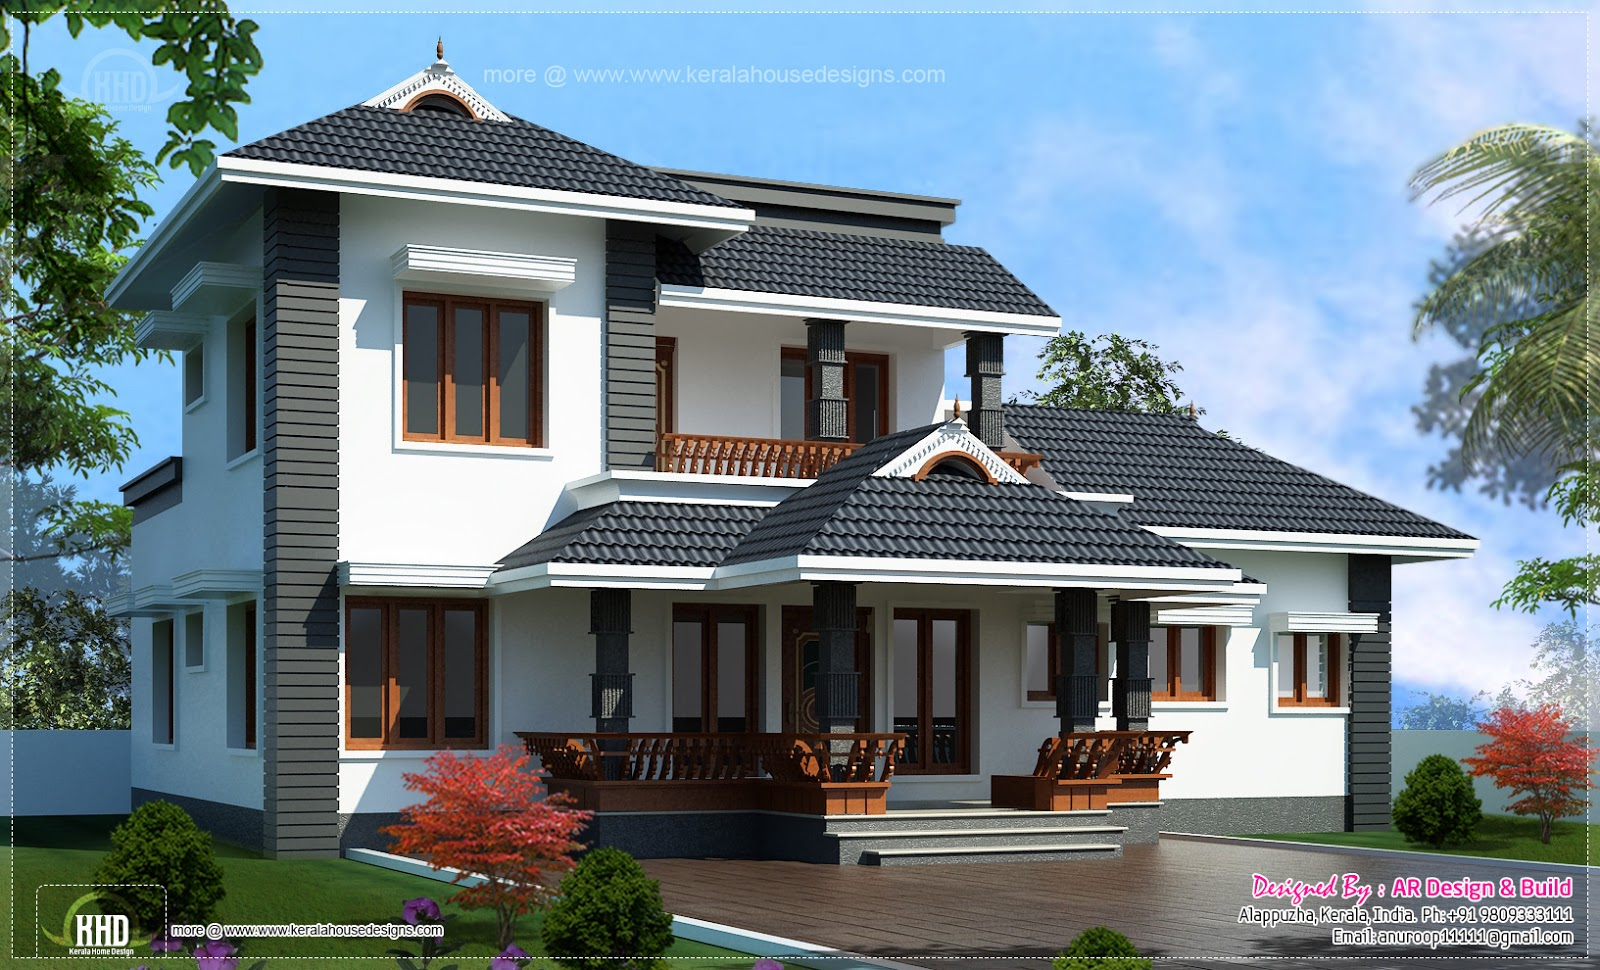 2000 4 bedroom sloping roof residence kerala for Kerala house plans 4 bedroom